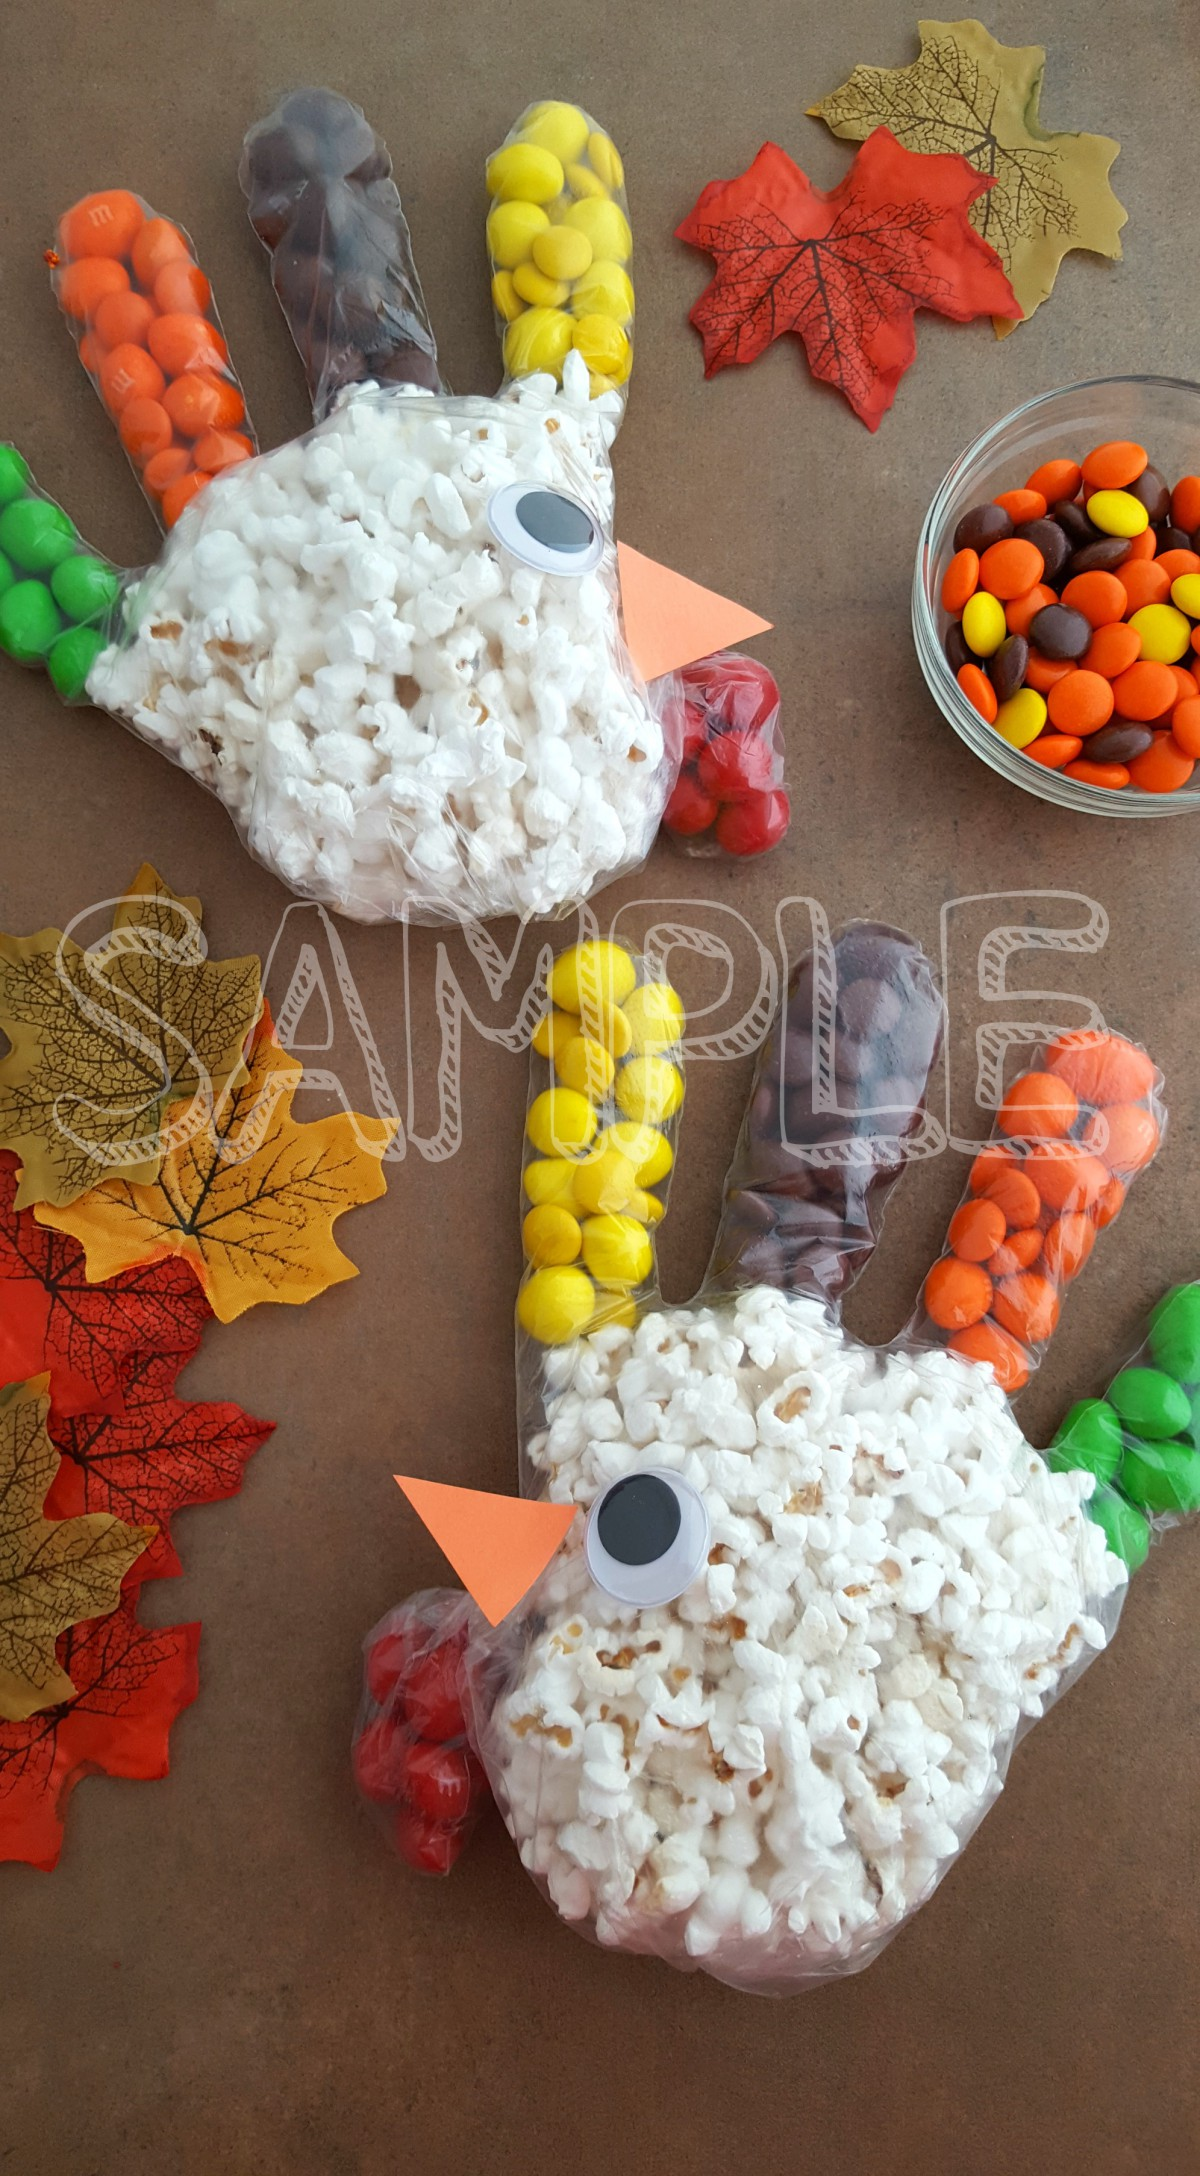 TurkeyPopcornTreatBag_Sample4